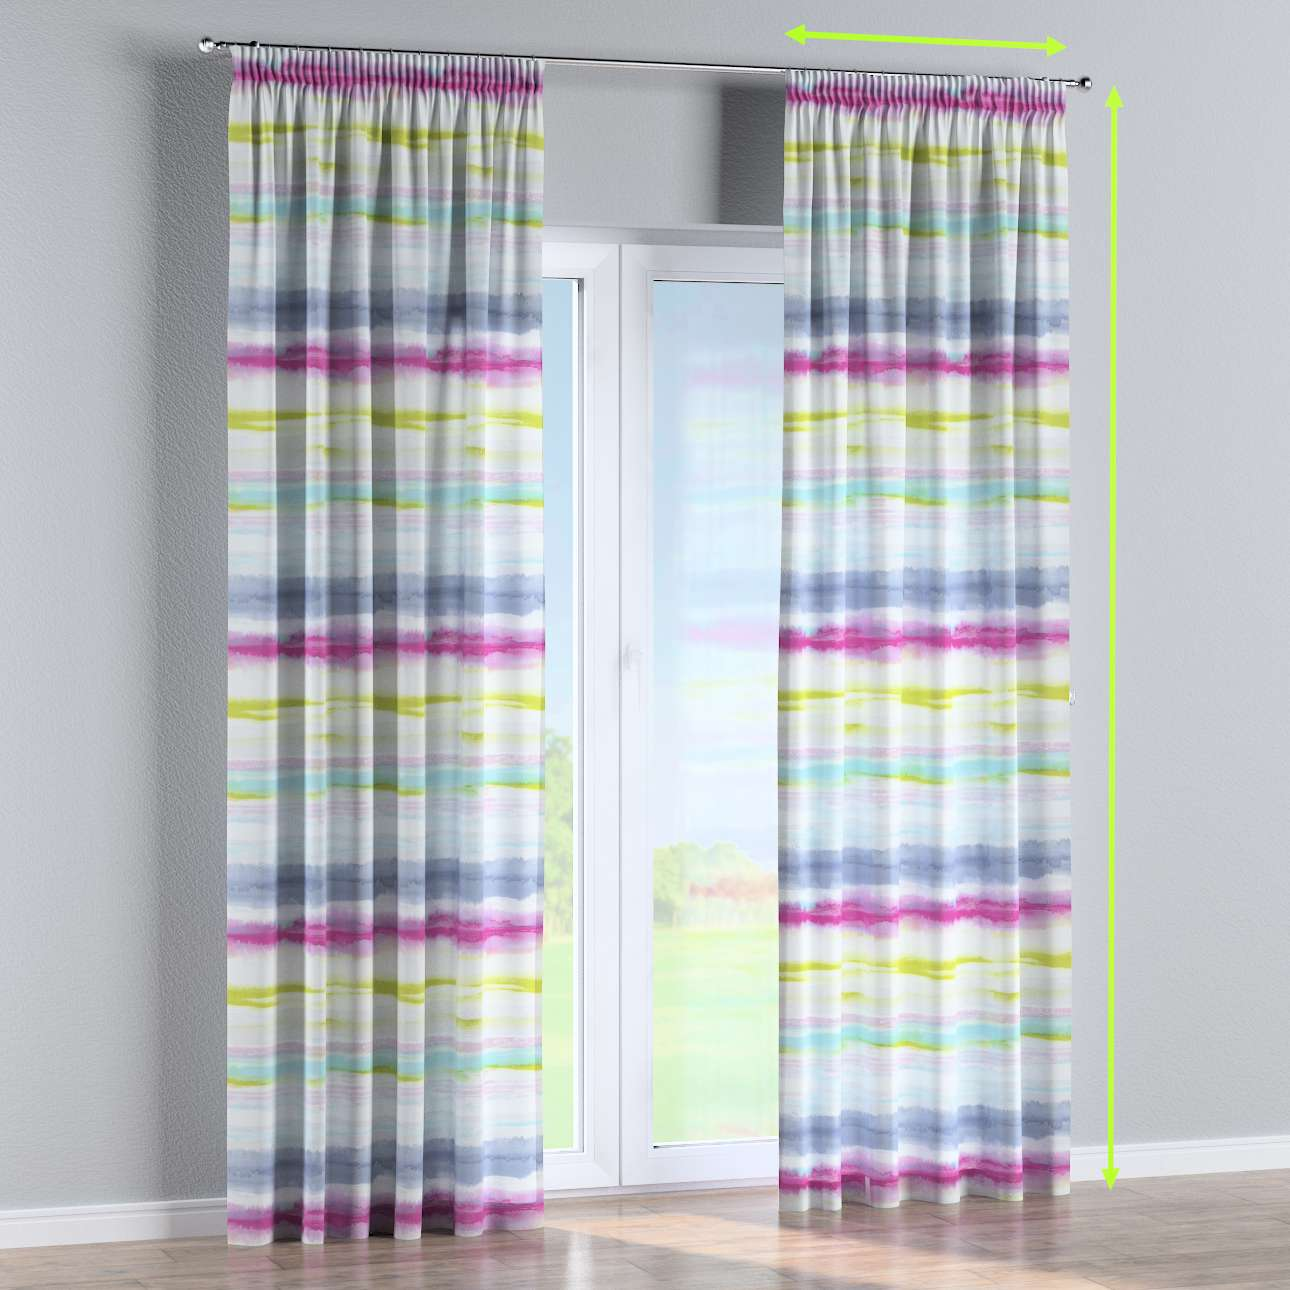 Pencil pleat curtains in collection Aquarelle, fabric: 140-69